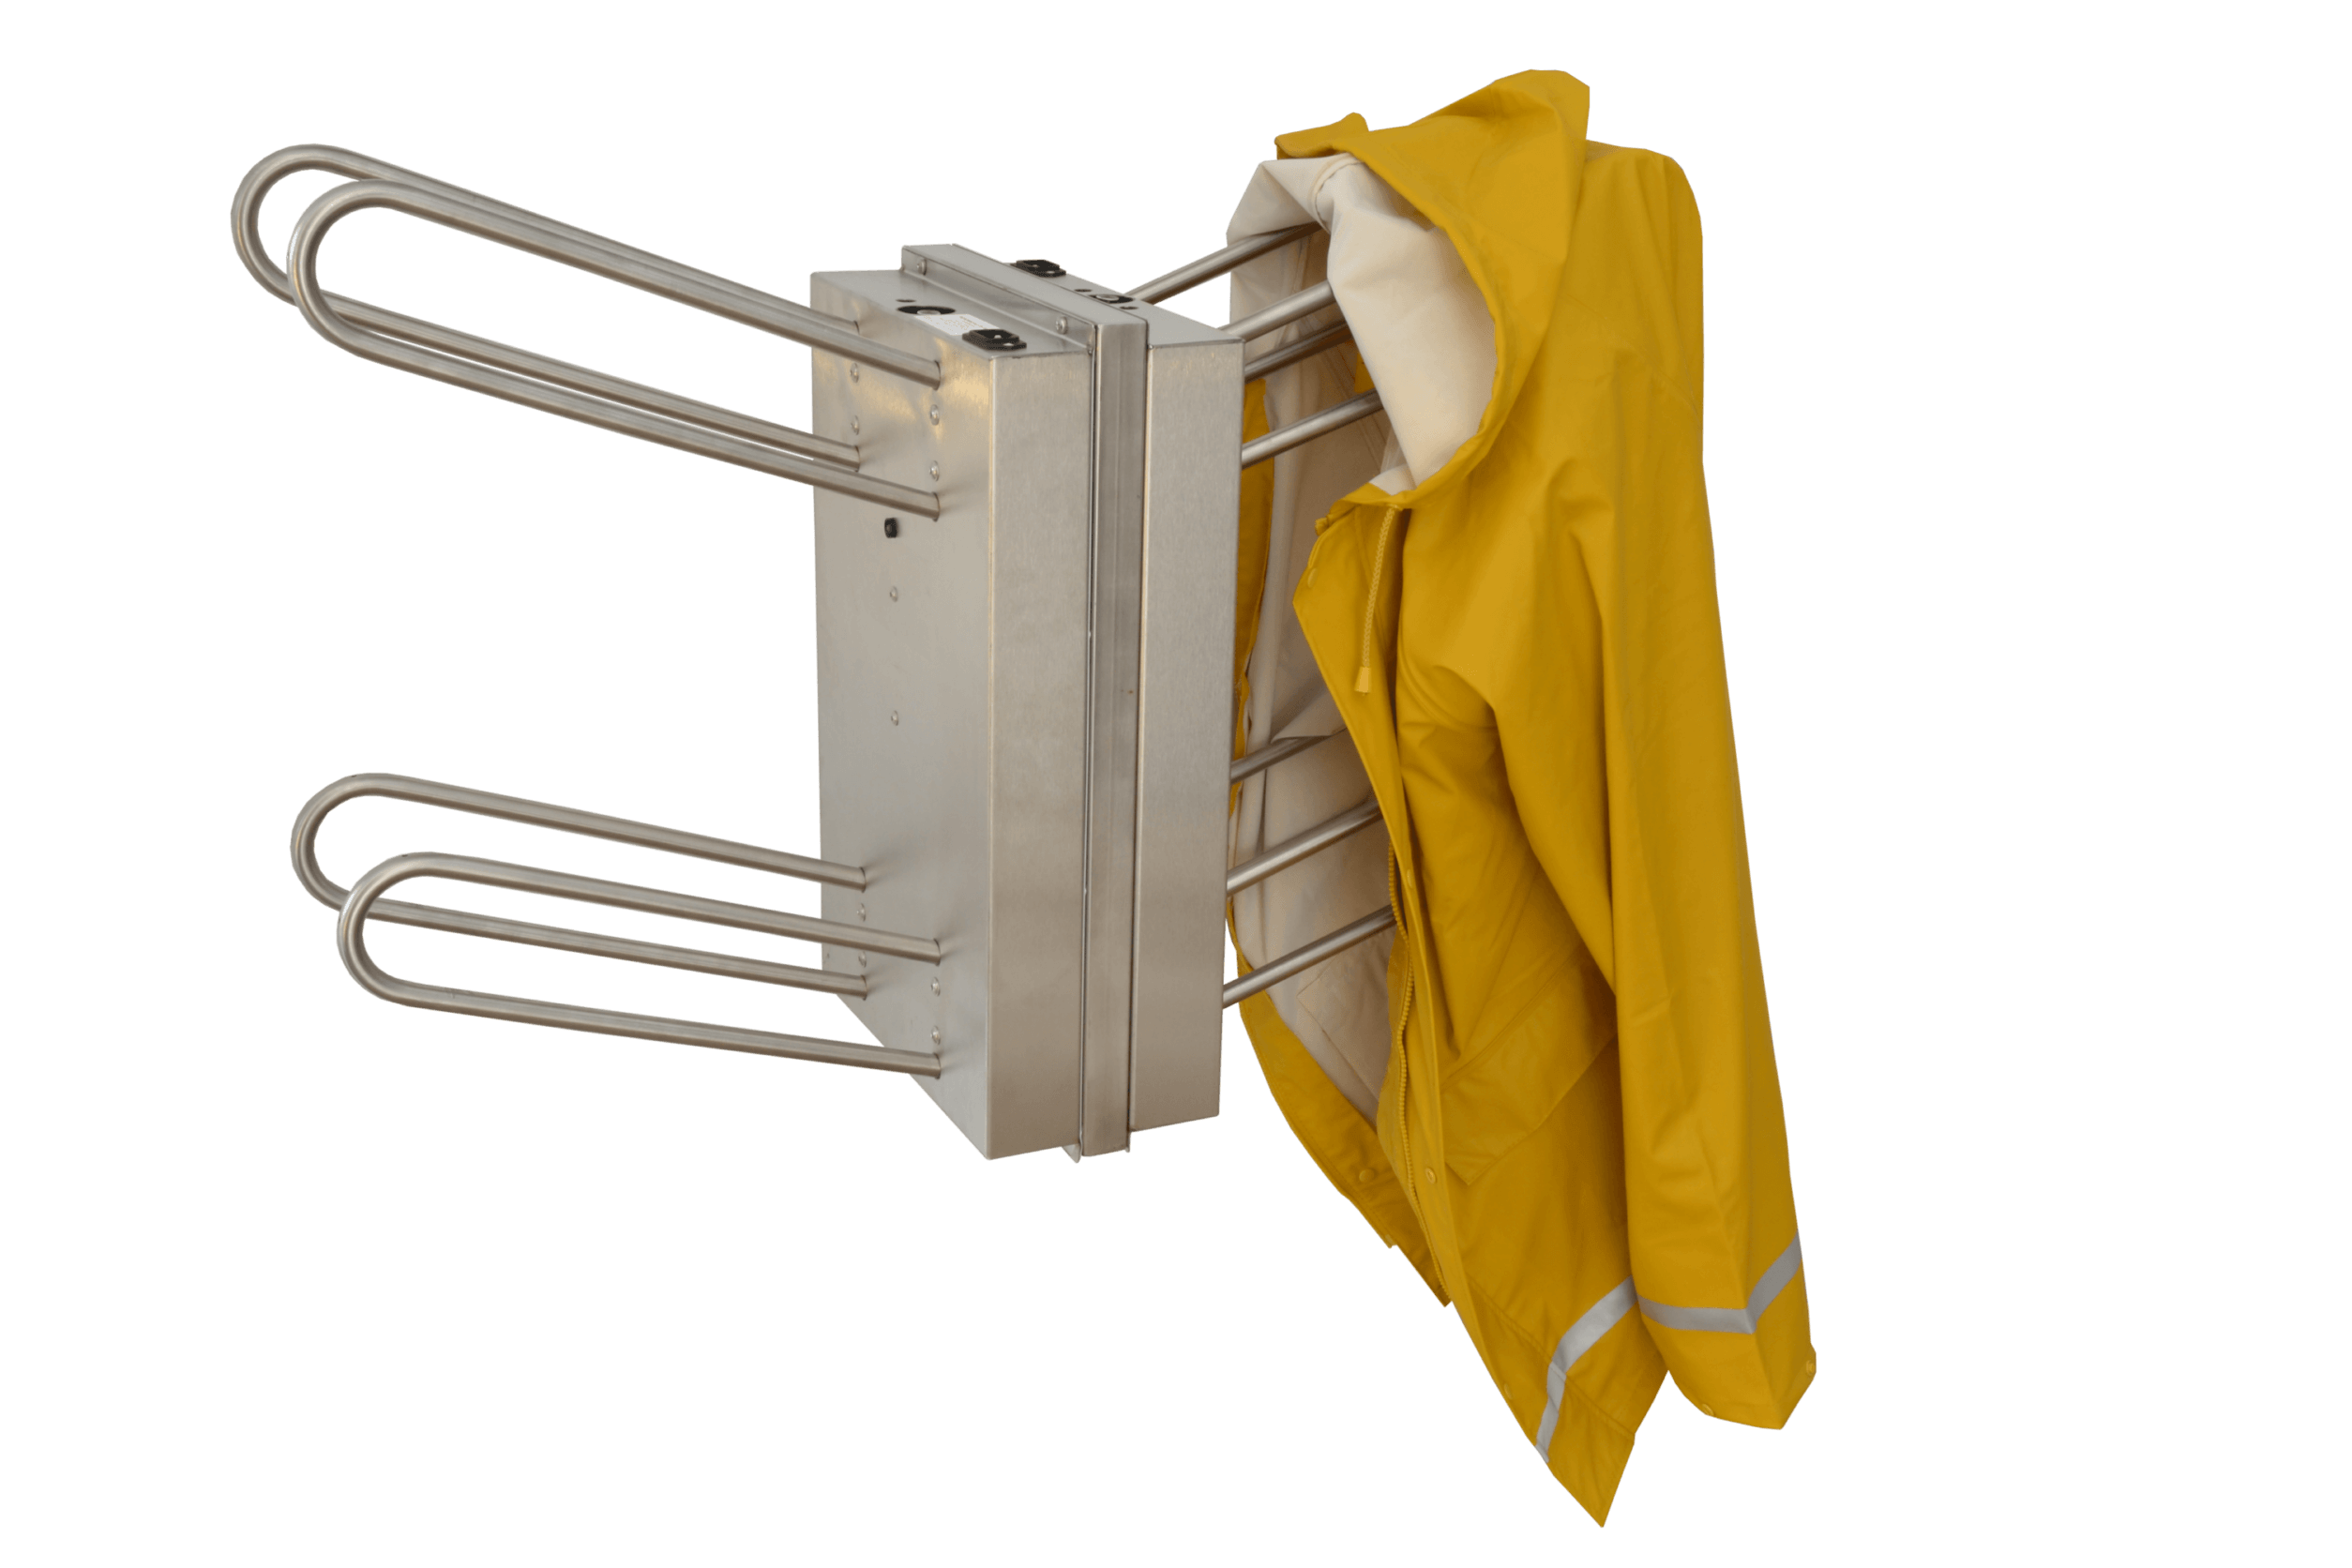 Stainless steel compact dryer for fishery clothing and rain jackets